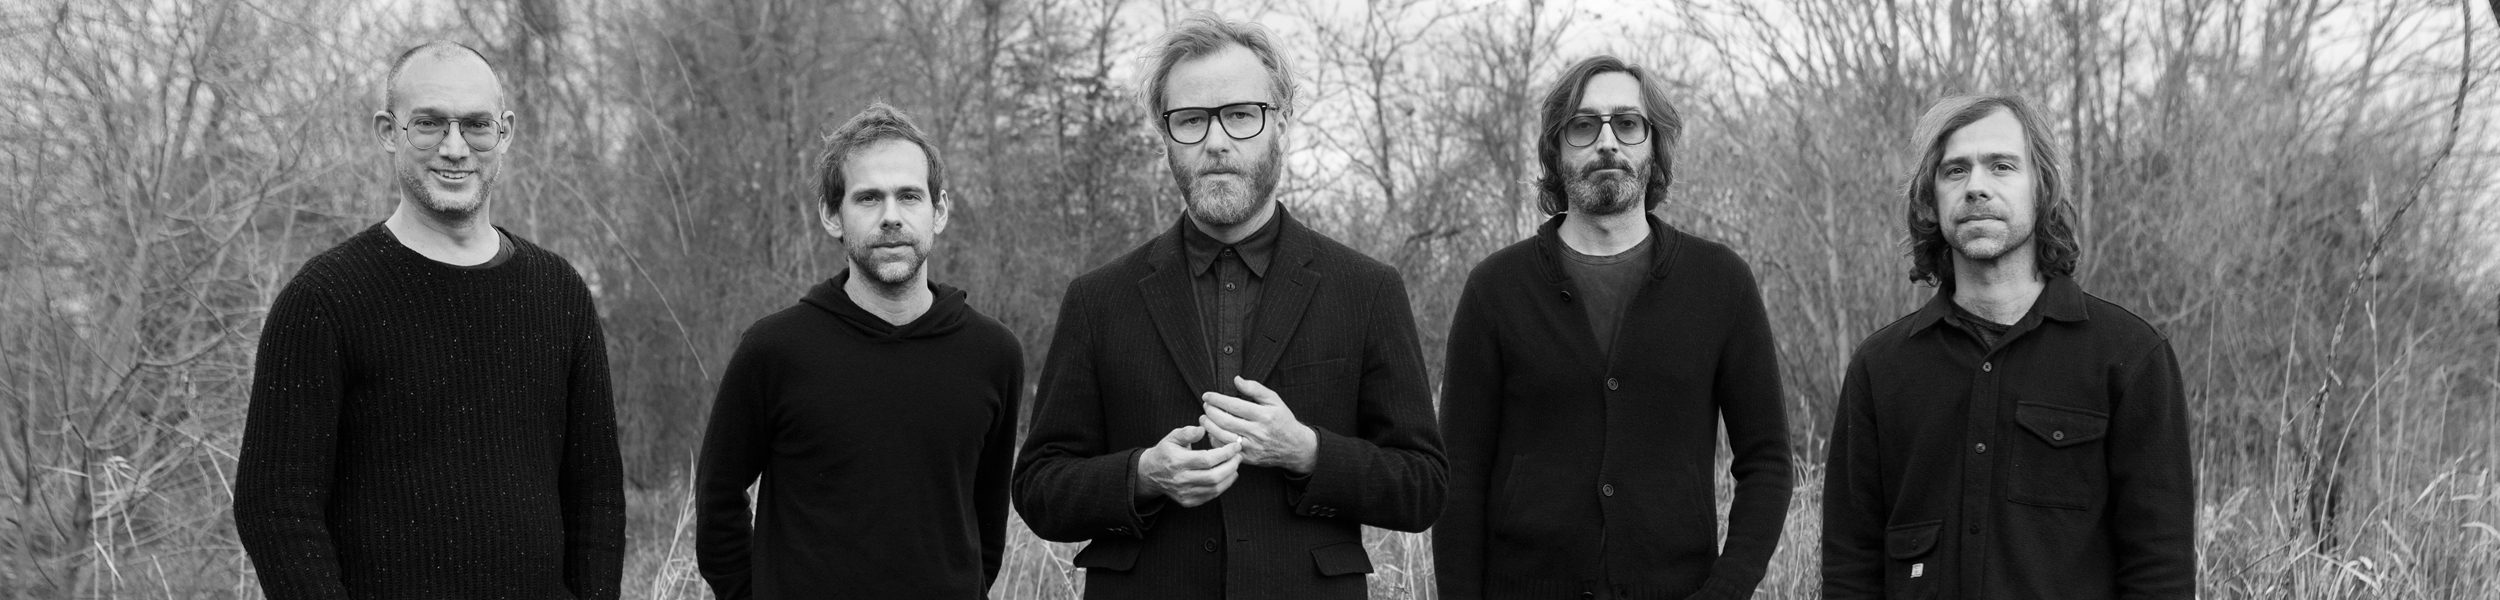 The National - The National Confirmed To Curate ATP